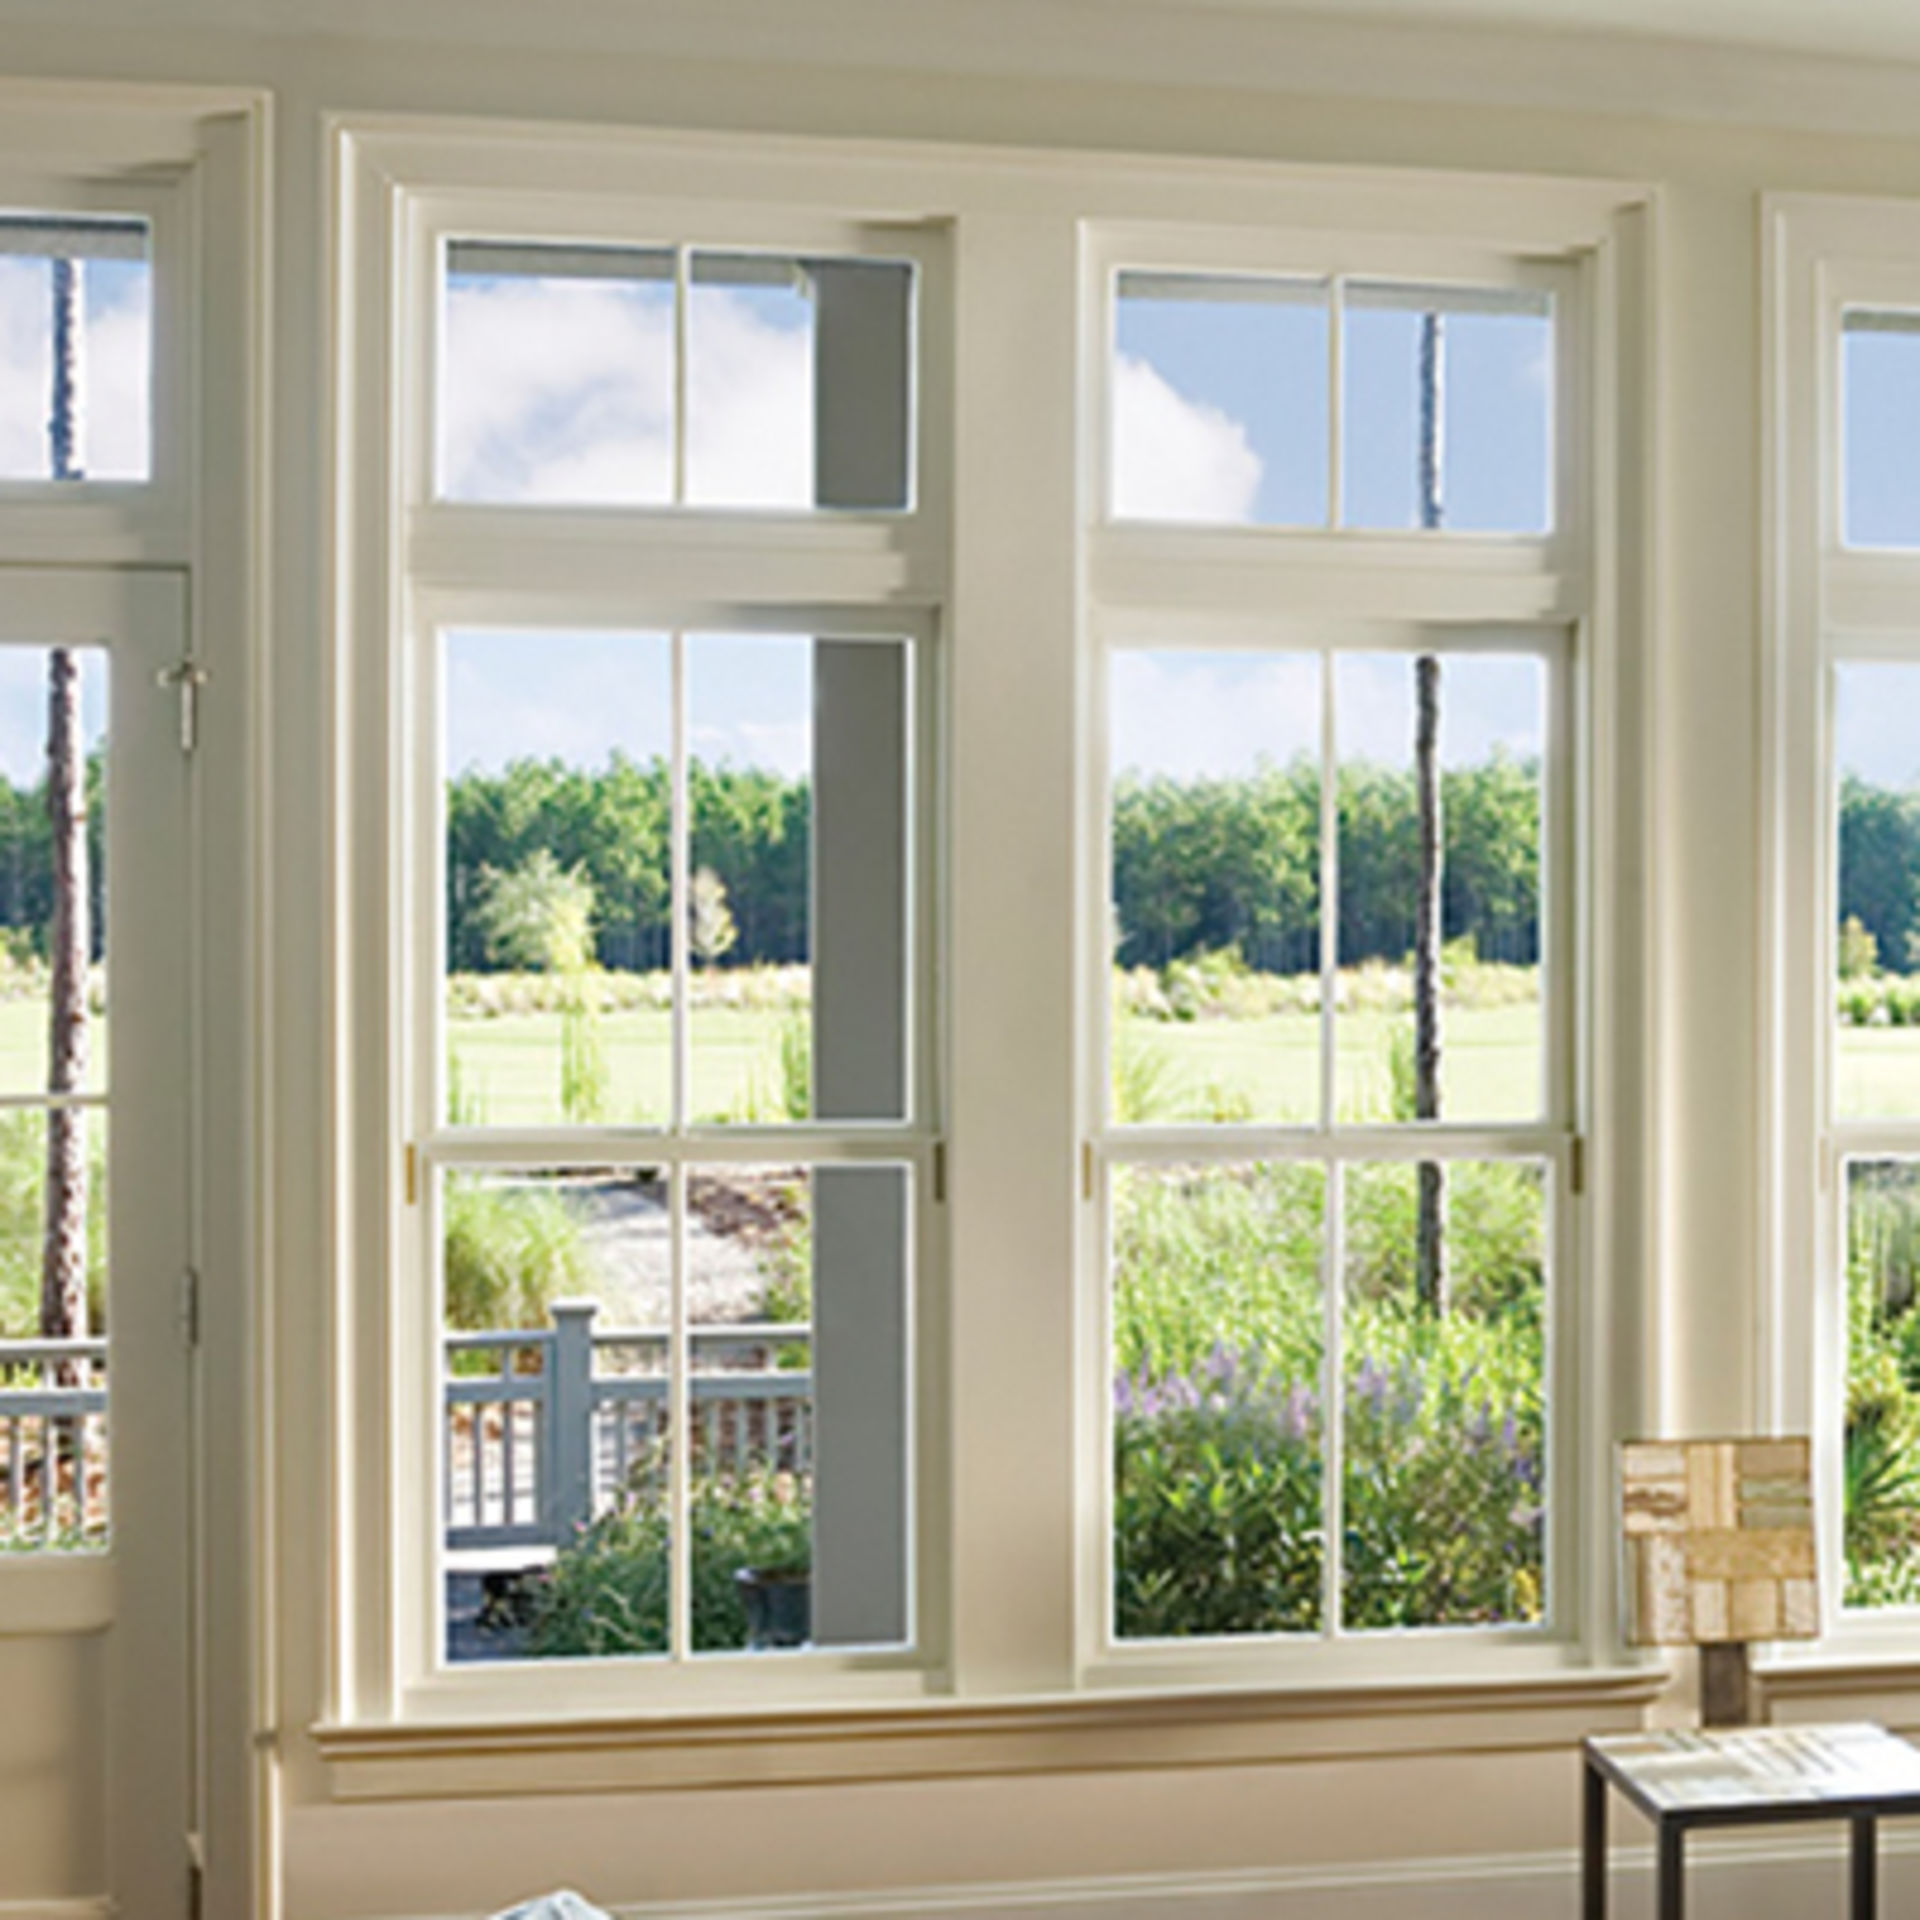 Extend the Lifespan of Your Windows